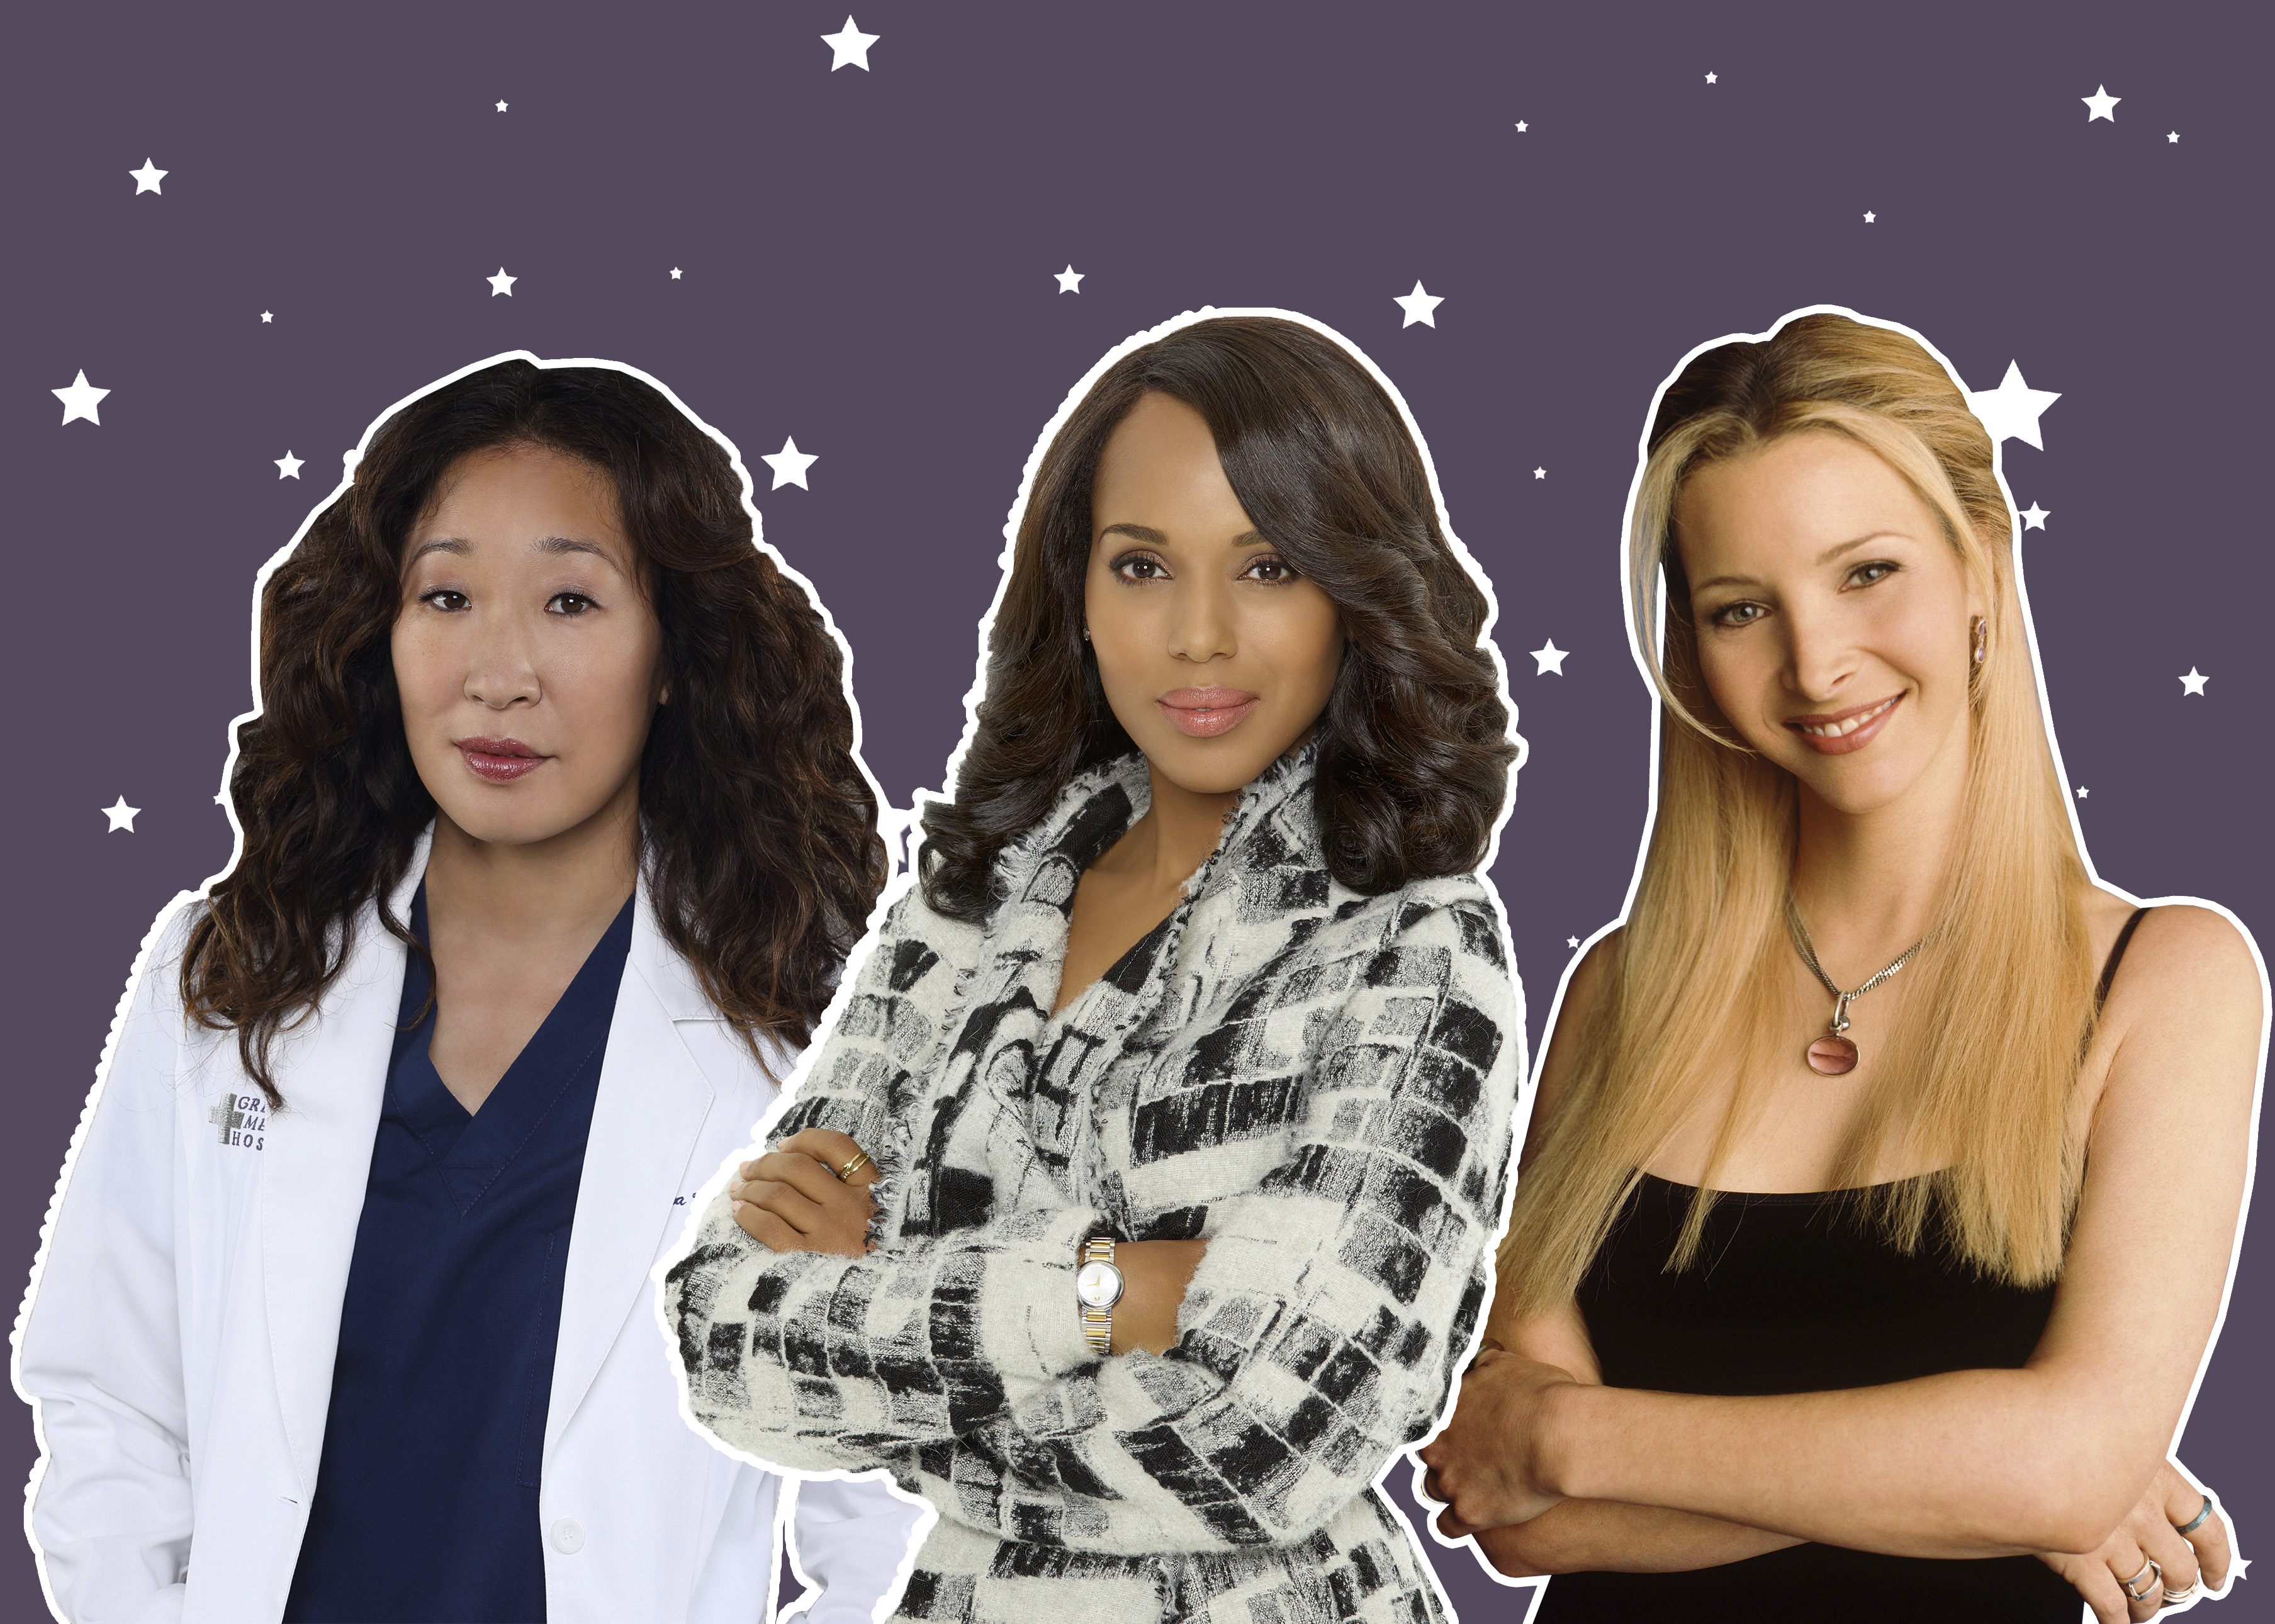 This is the fierce female TV character you should channel for 2018, according to your zodiac sign